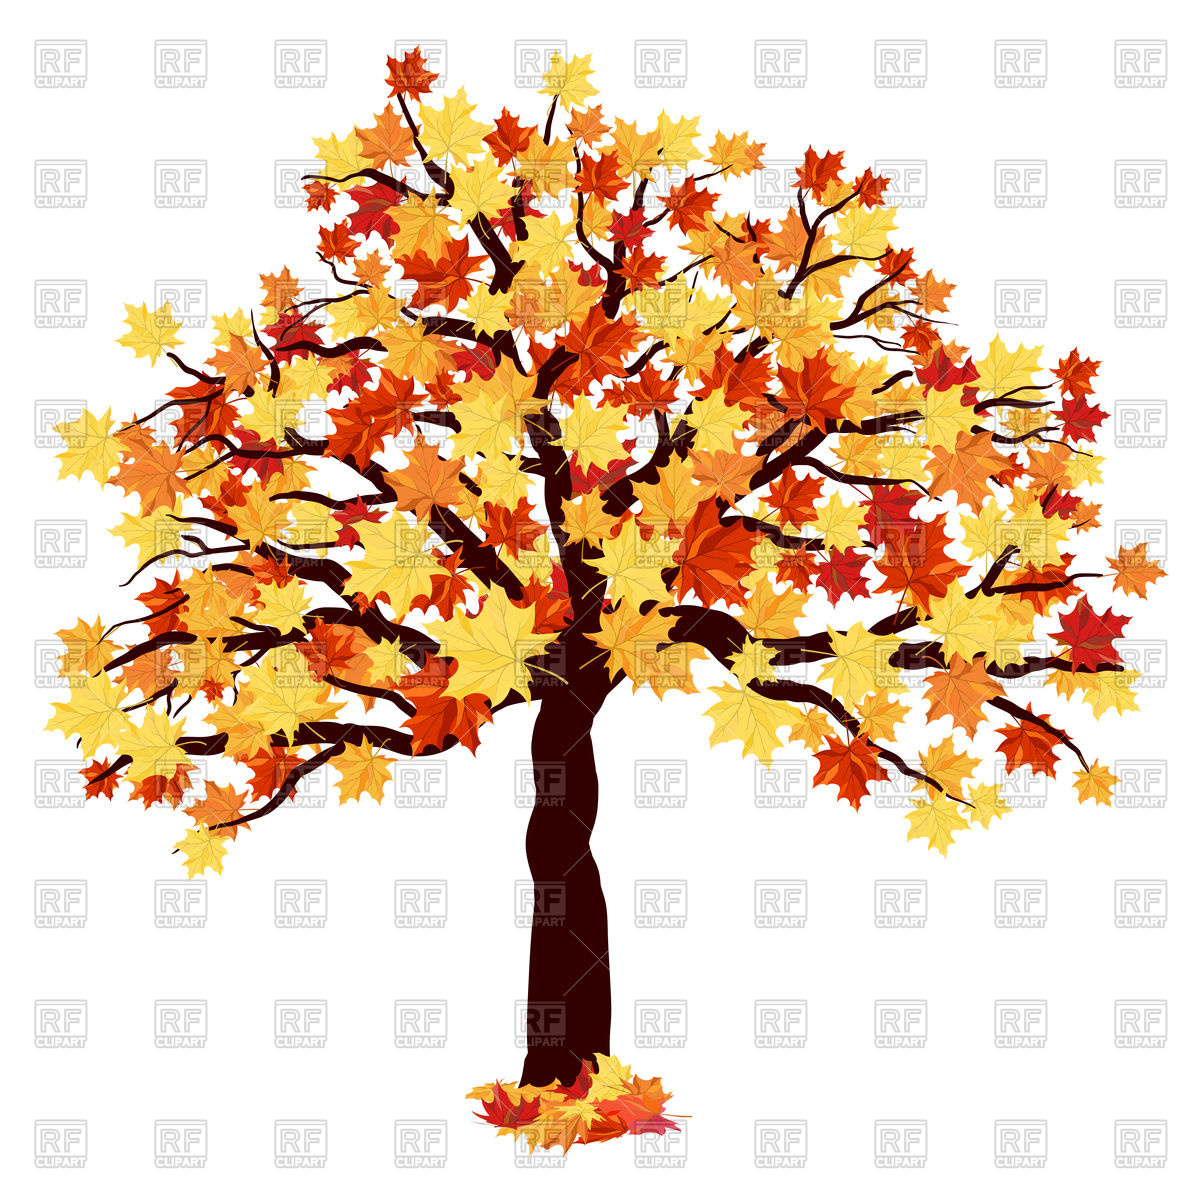 Autumn maple tree Vector Image #110614.